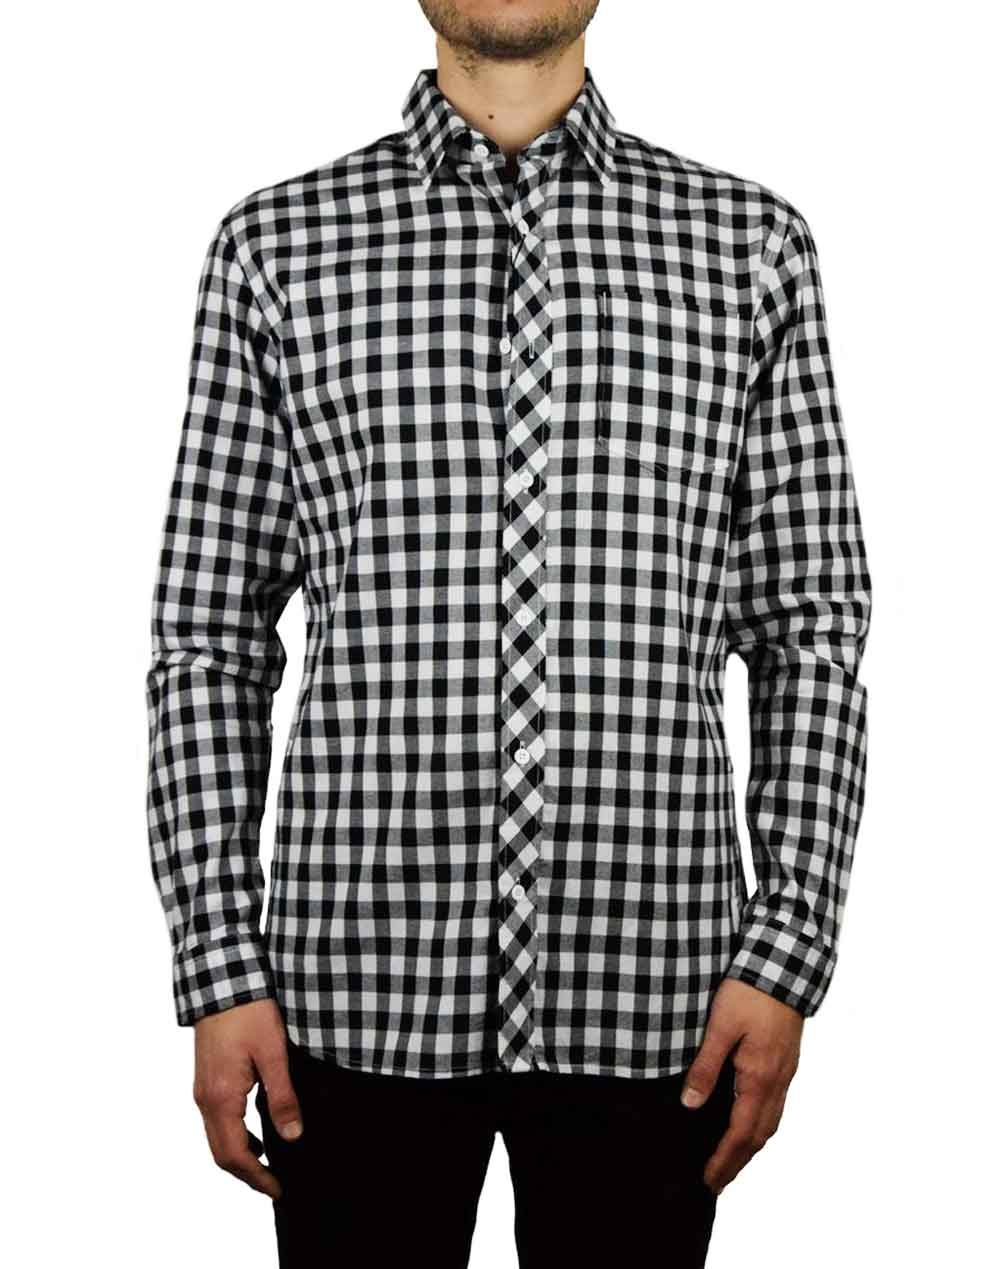 Jack & Jones Joe Shirt White (12131919)